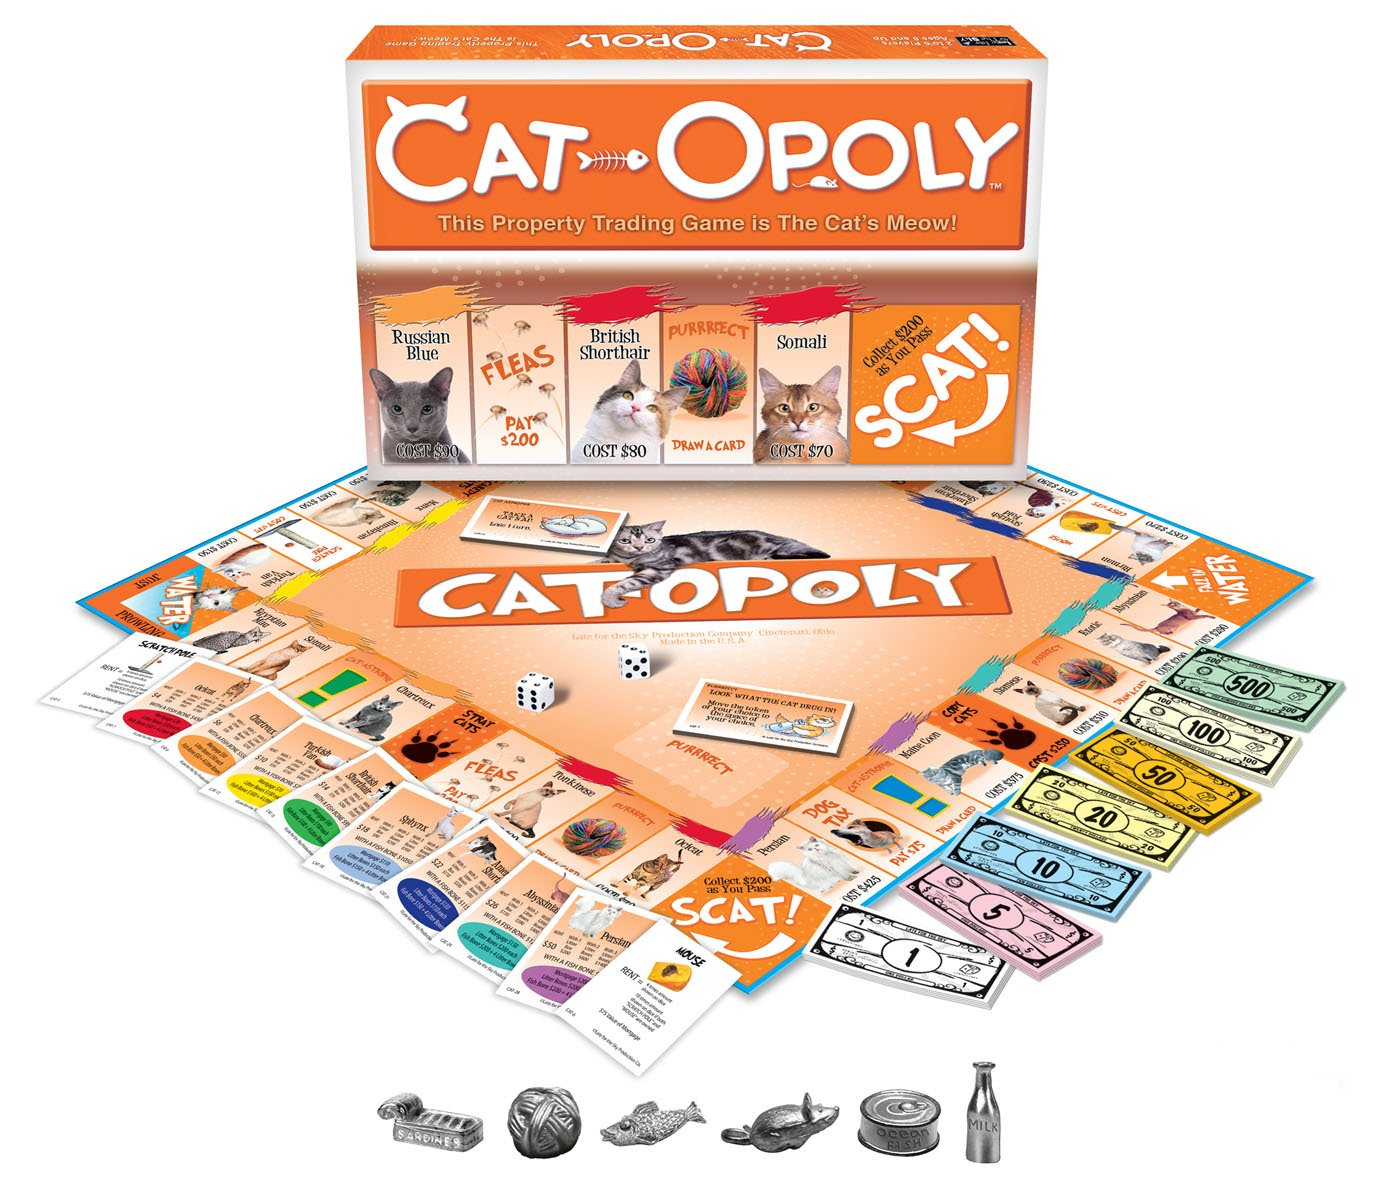 Cat-Opoly Monopoly Board Game.